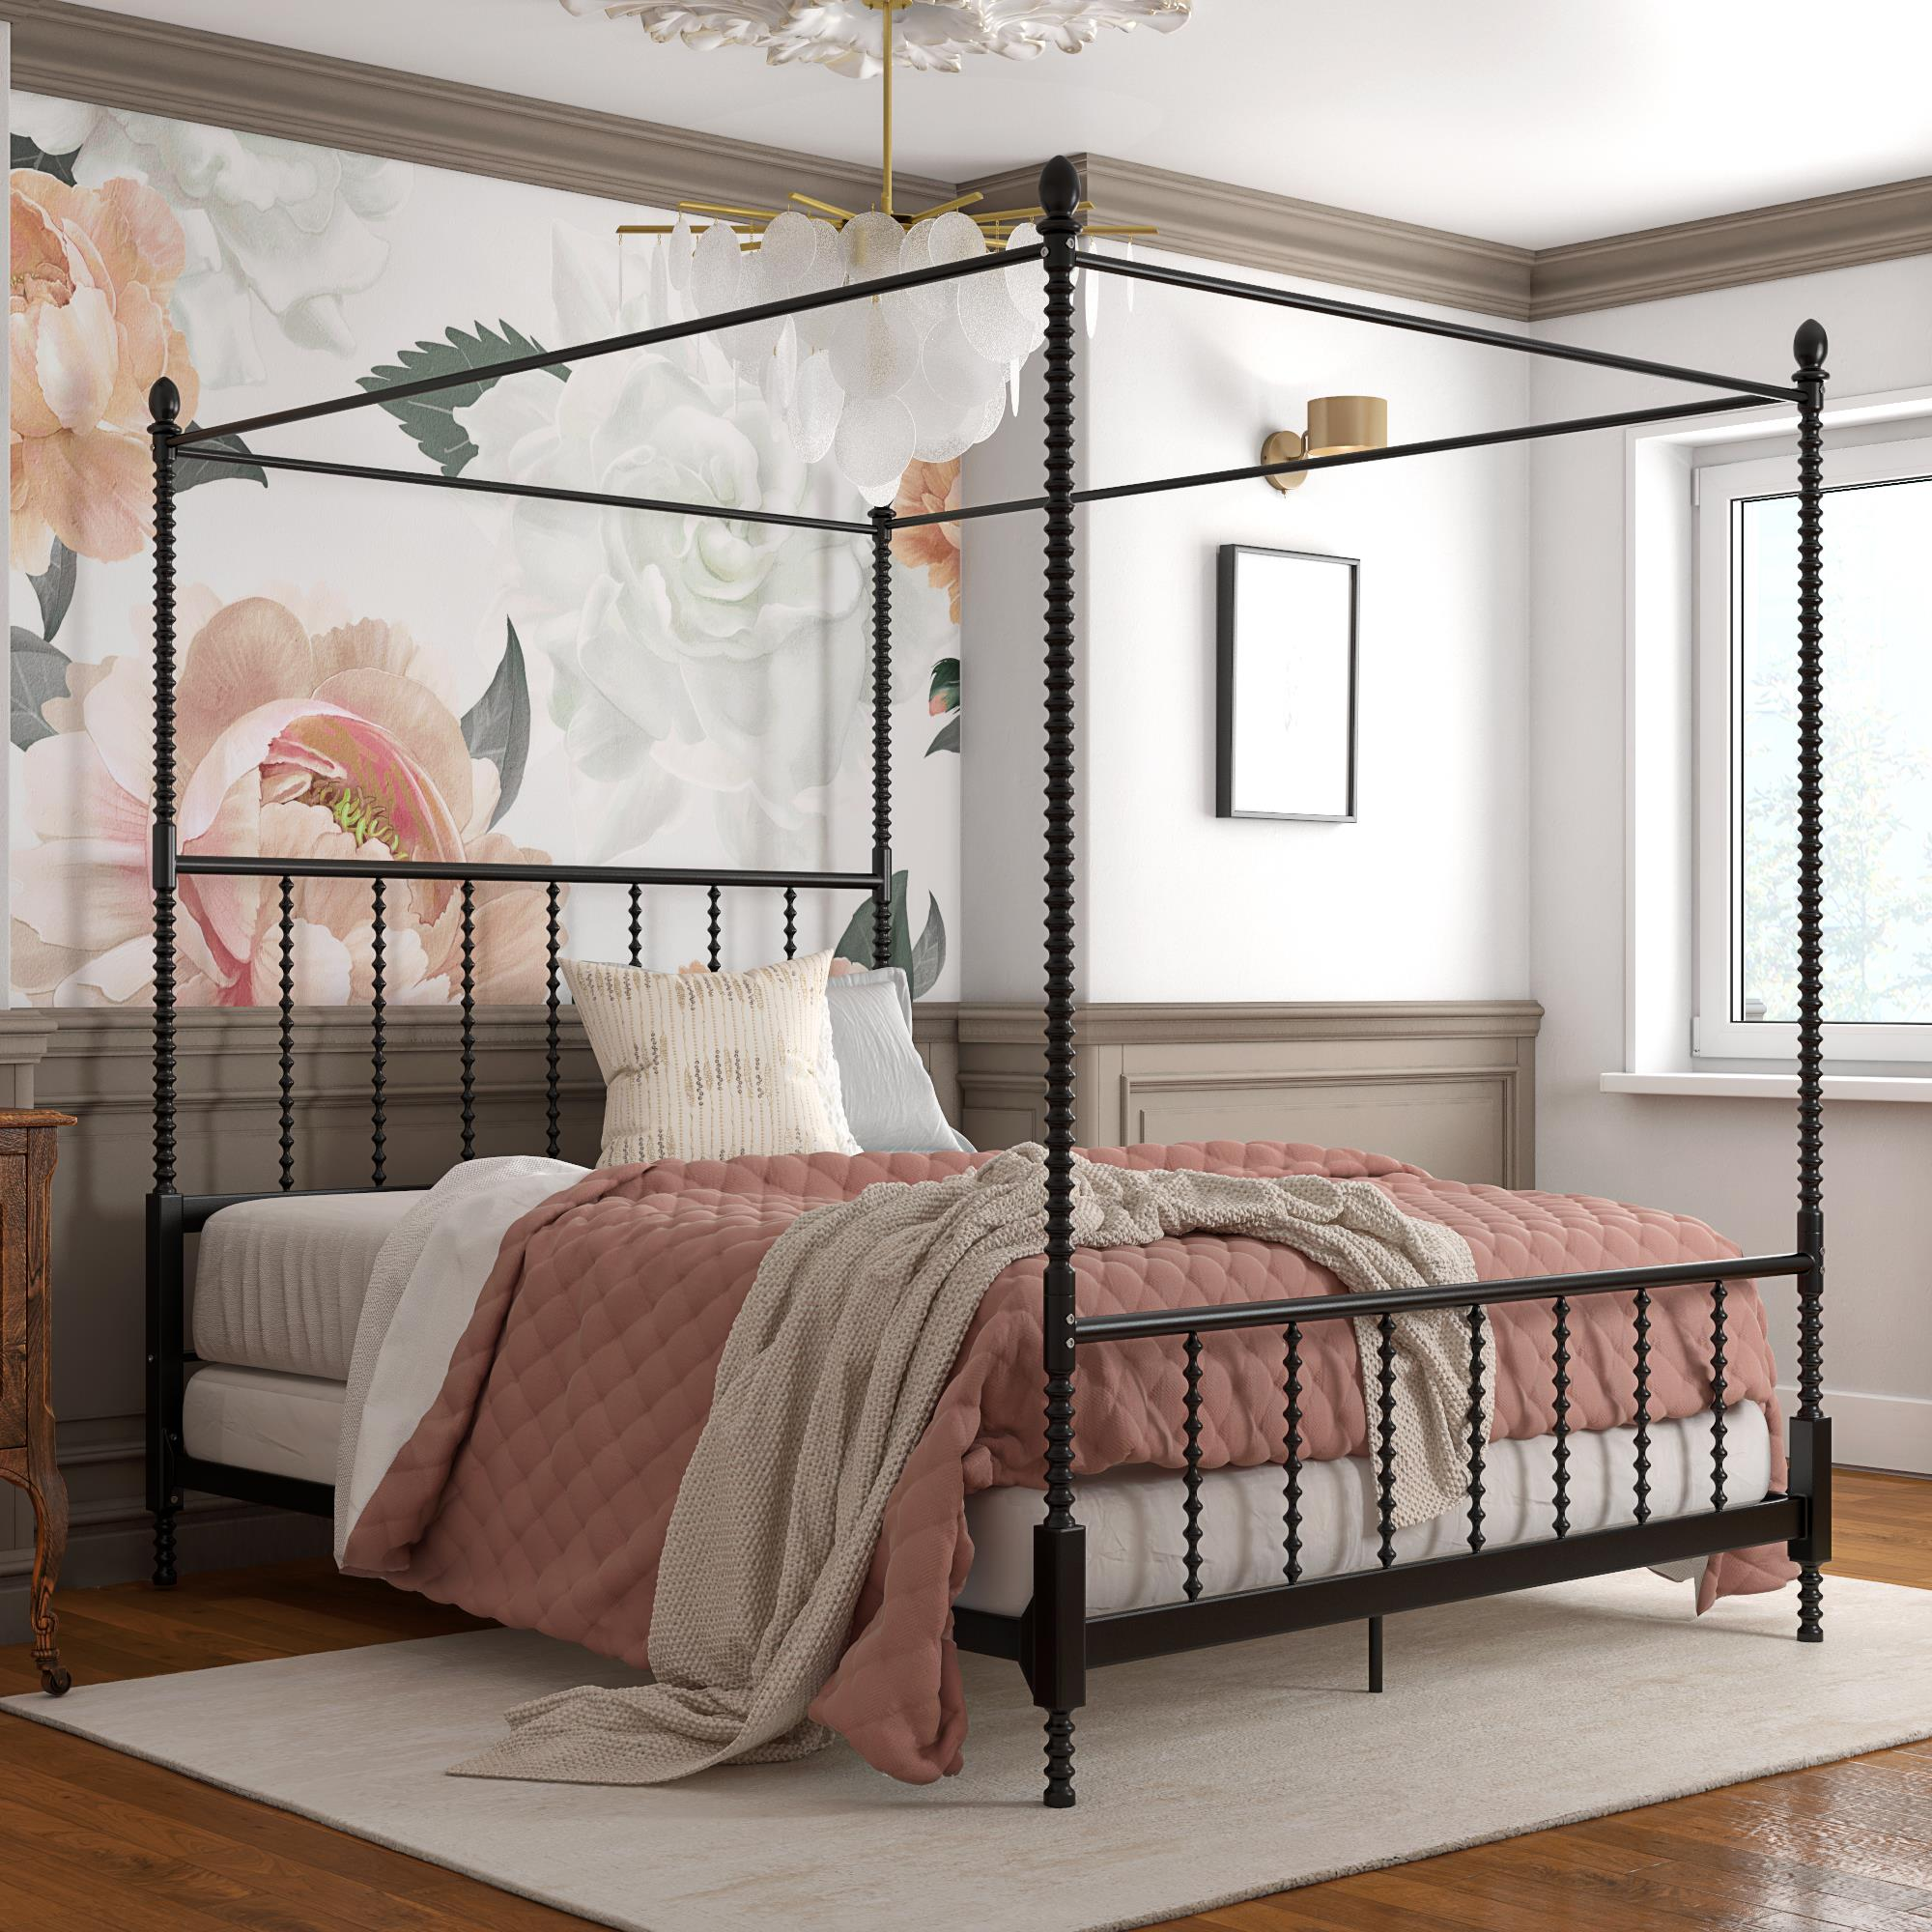 Picture of: Dhp Anika Metal Canopy Bed Queen Size Frame Bedroom Furniture White Walmart Com Walmart Com